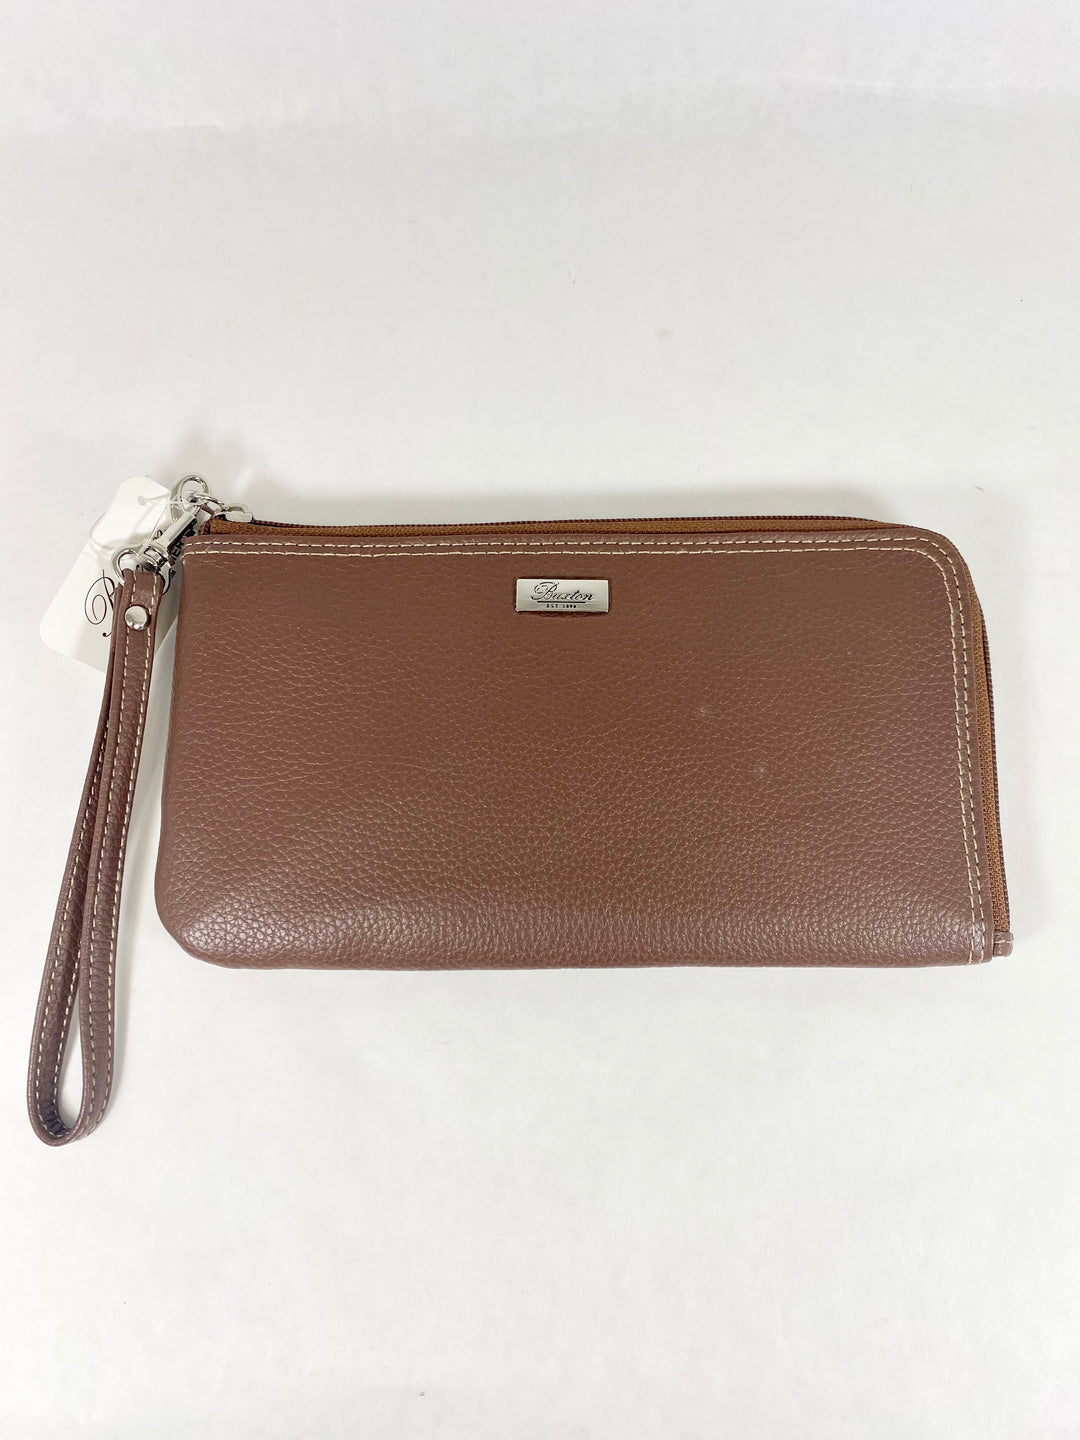 Primary Photo - BRAND: BUXTON <BR>STYLE: WALLET <BR>COLOR: BROWN <BR>SIZE: LARGE <BR>SKU: 213-21394-46382